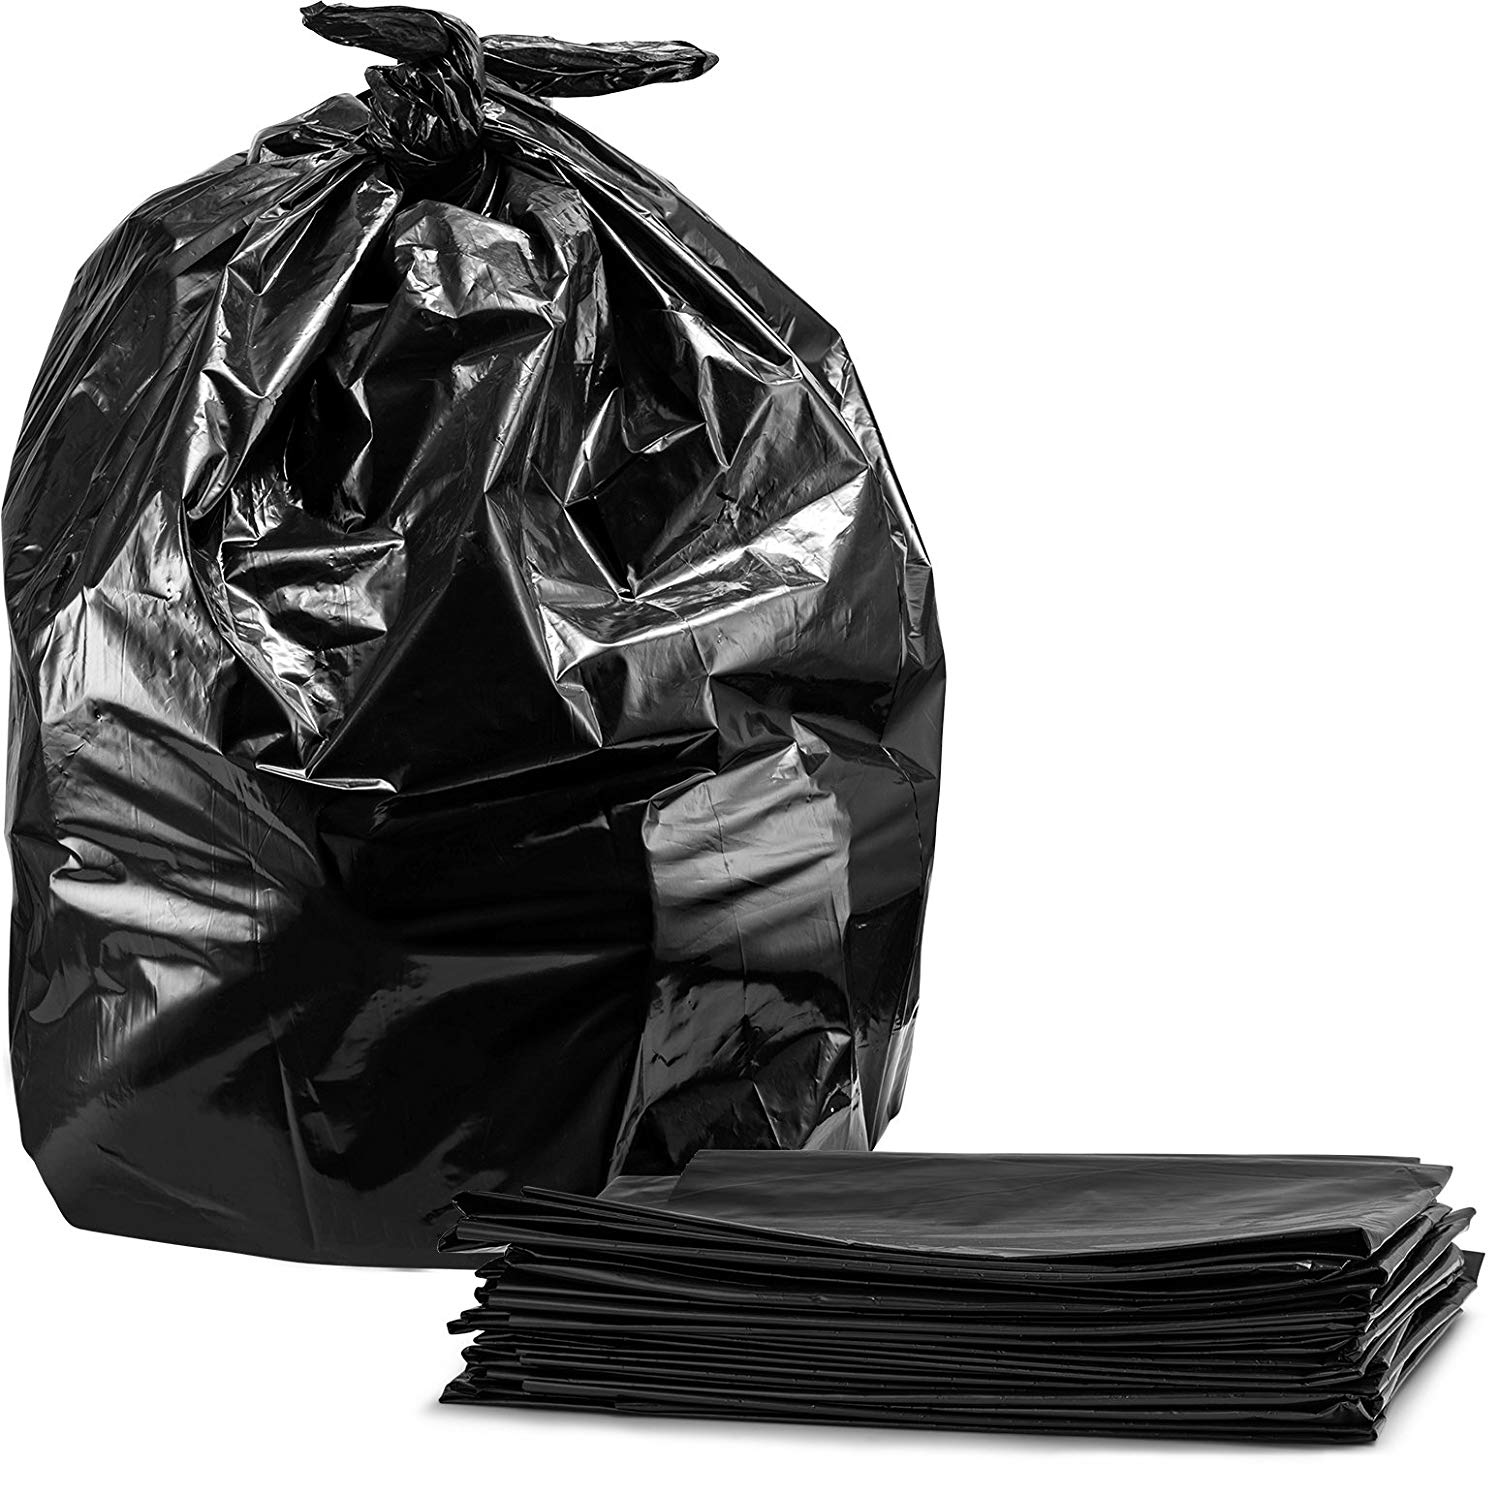 "Garbage Bags - Regular Duty - 20"" x 22"" (500/cs)"